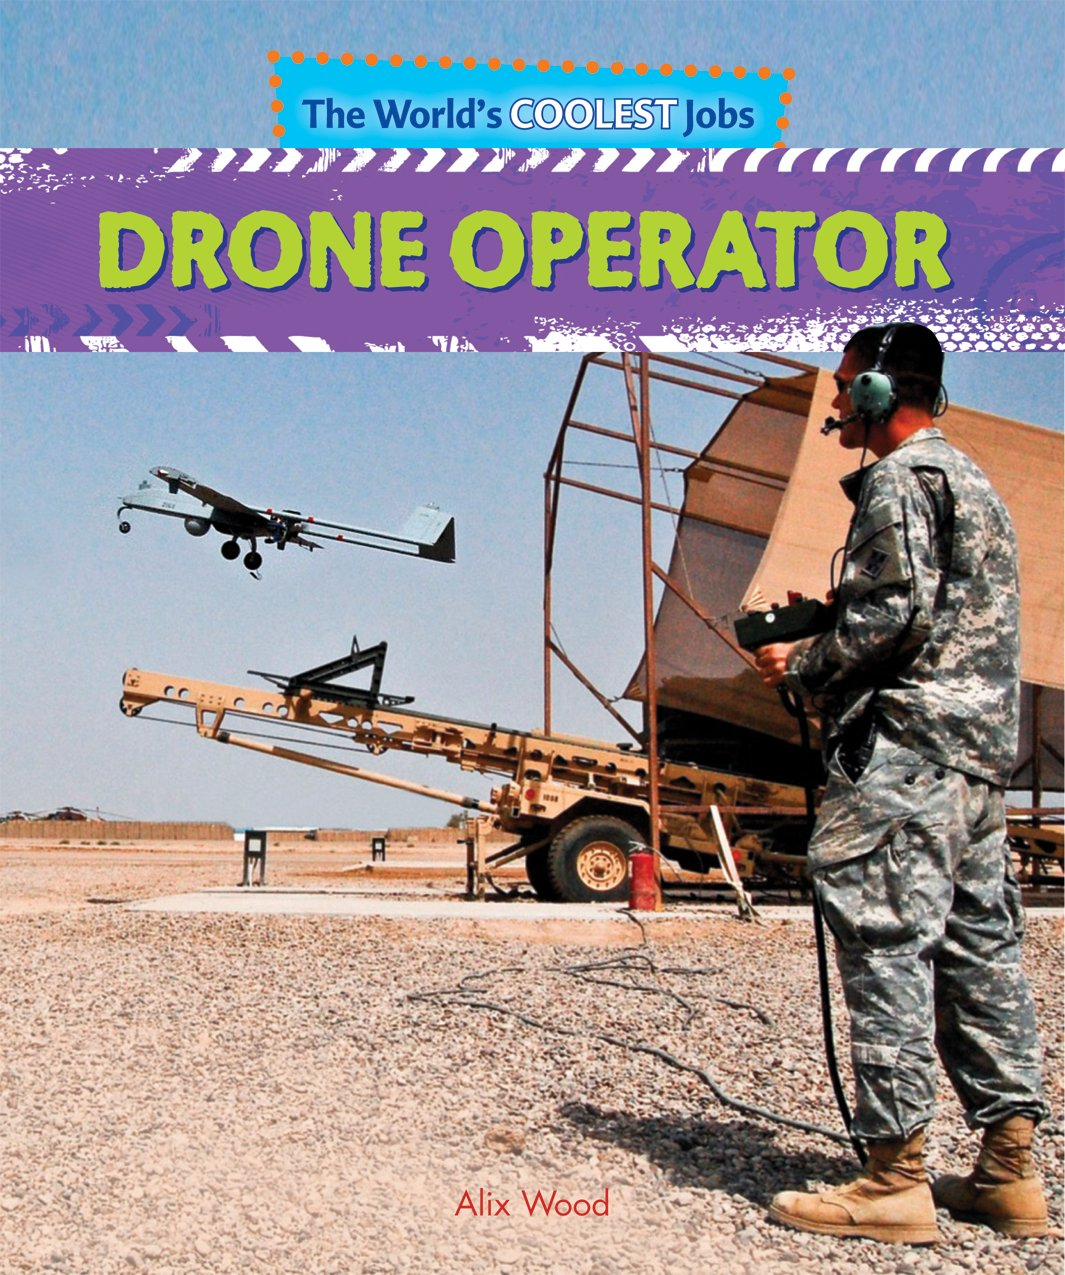 Drone Operator Jobs >> Drone Operator The World S Coolest Jobs Alix Wood